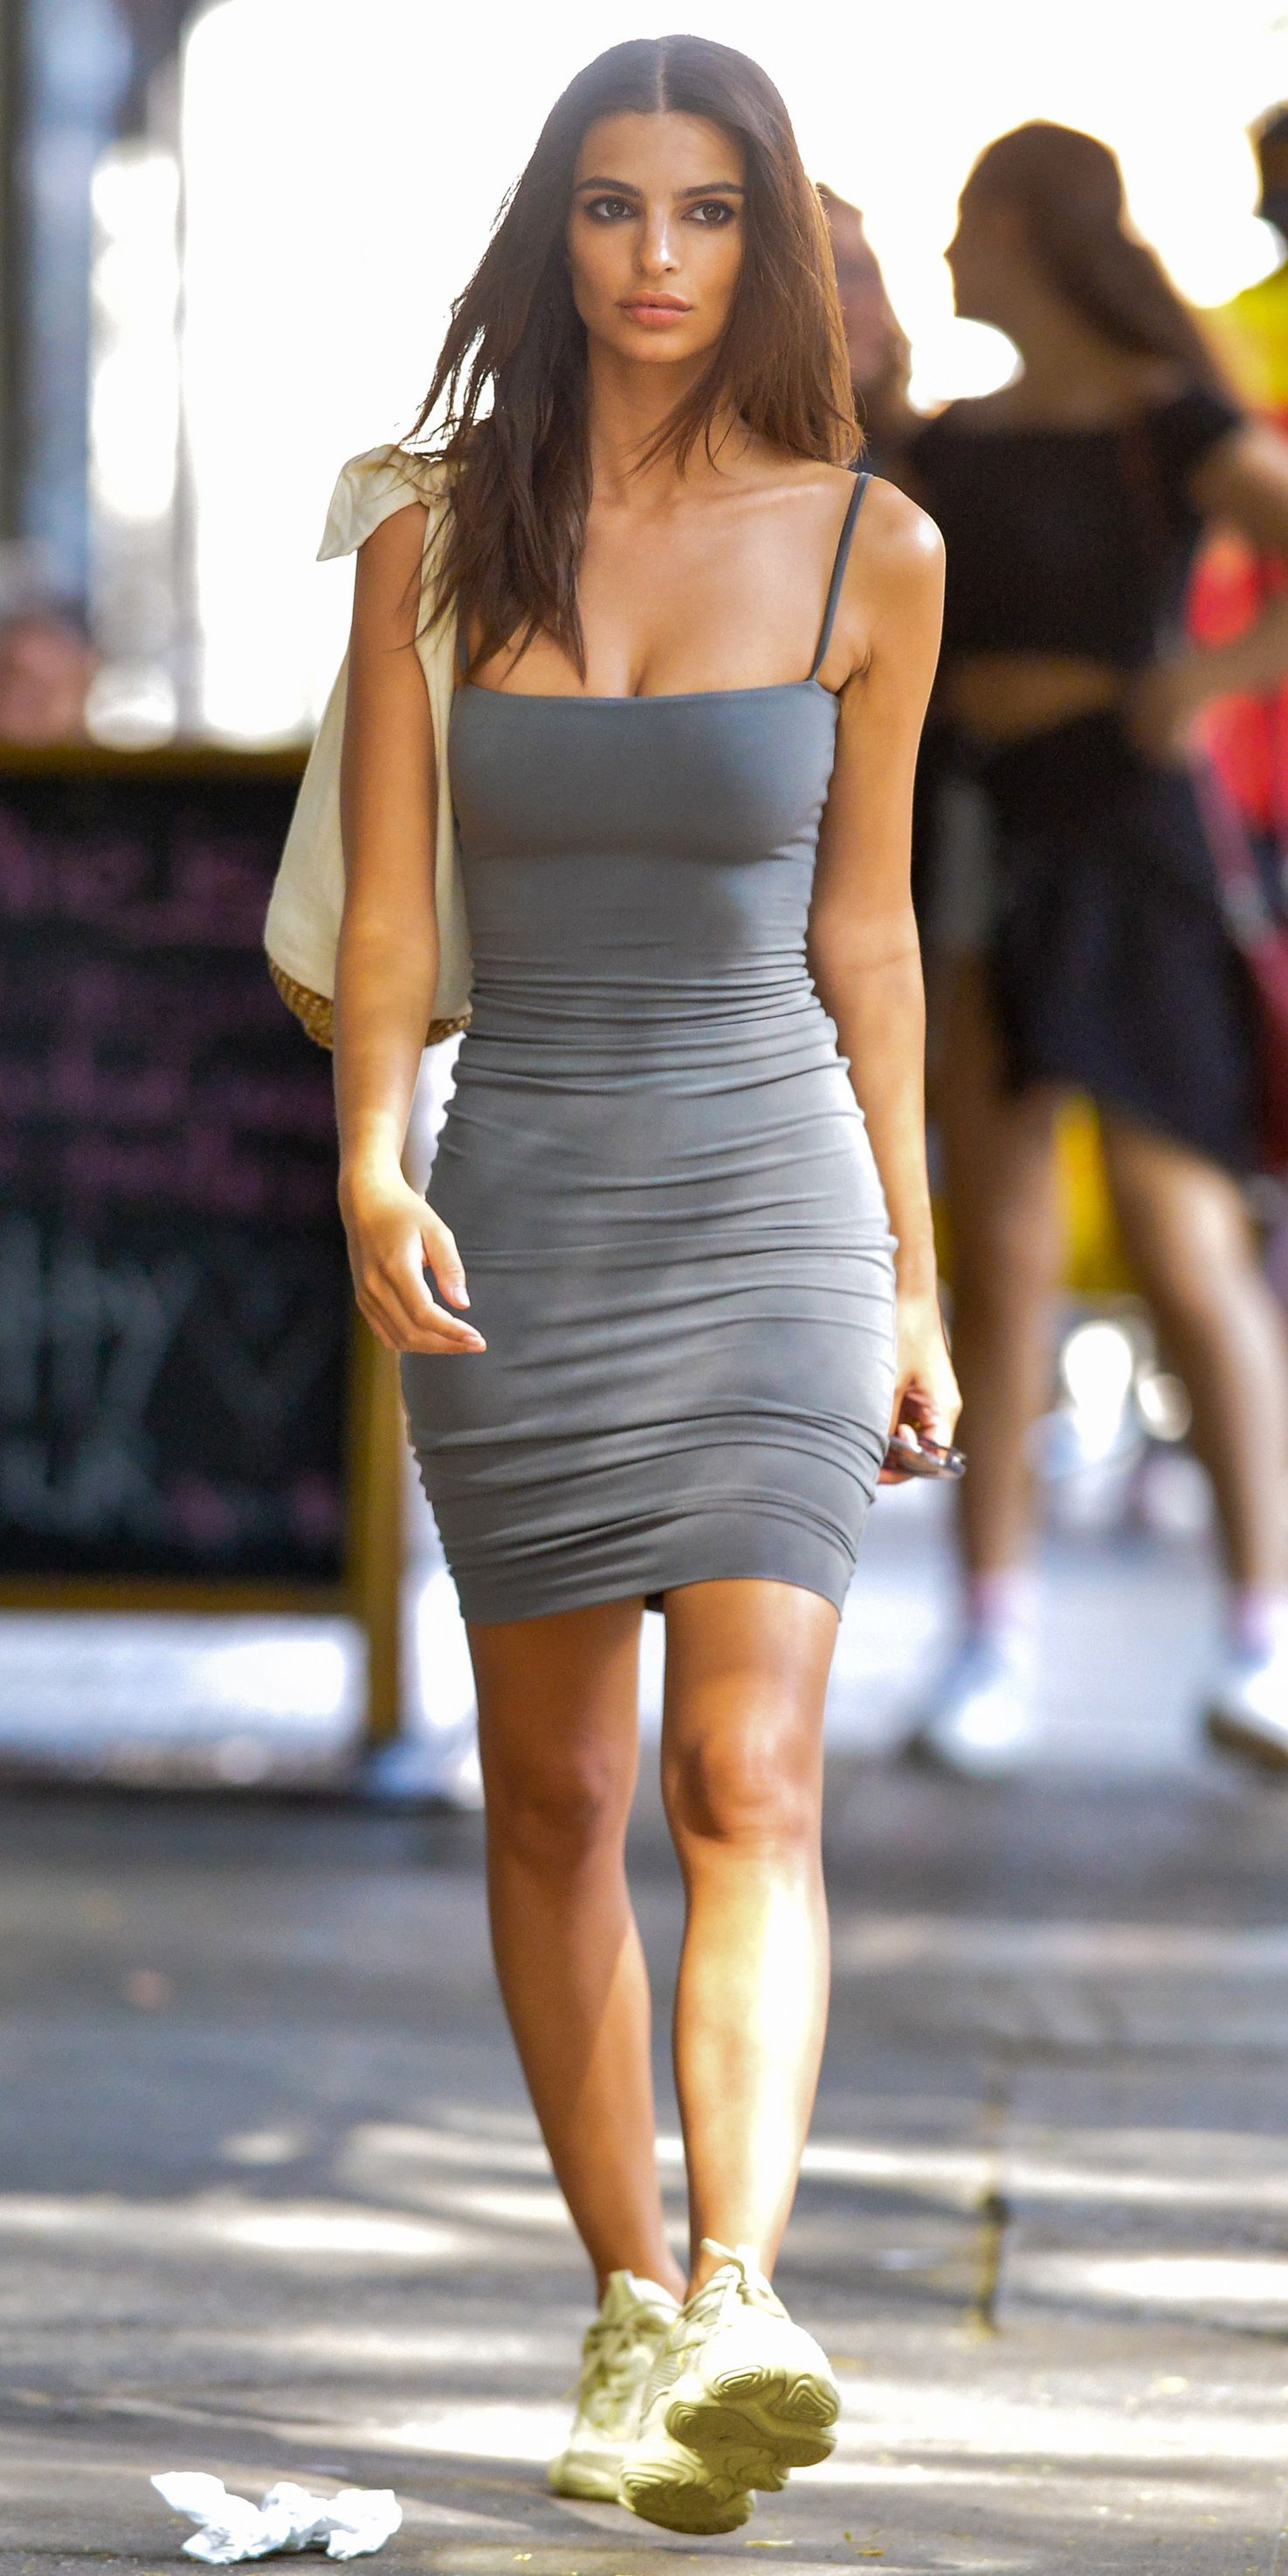 e81e563b31f1f3 Look of the Day - Emily Ratajkowski from InStyle.com